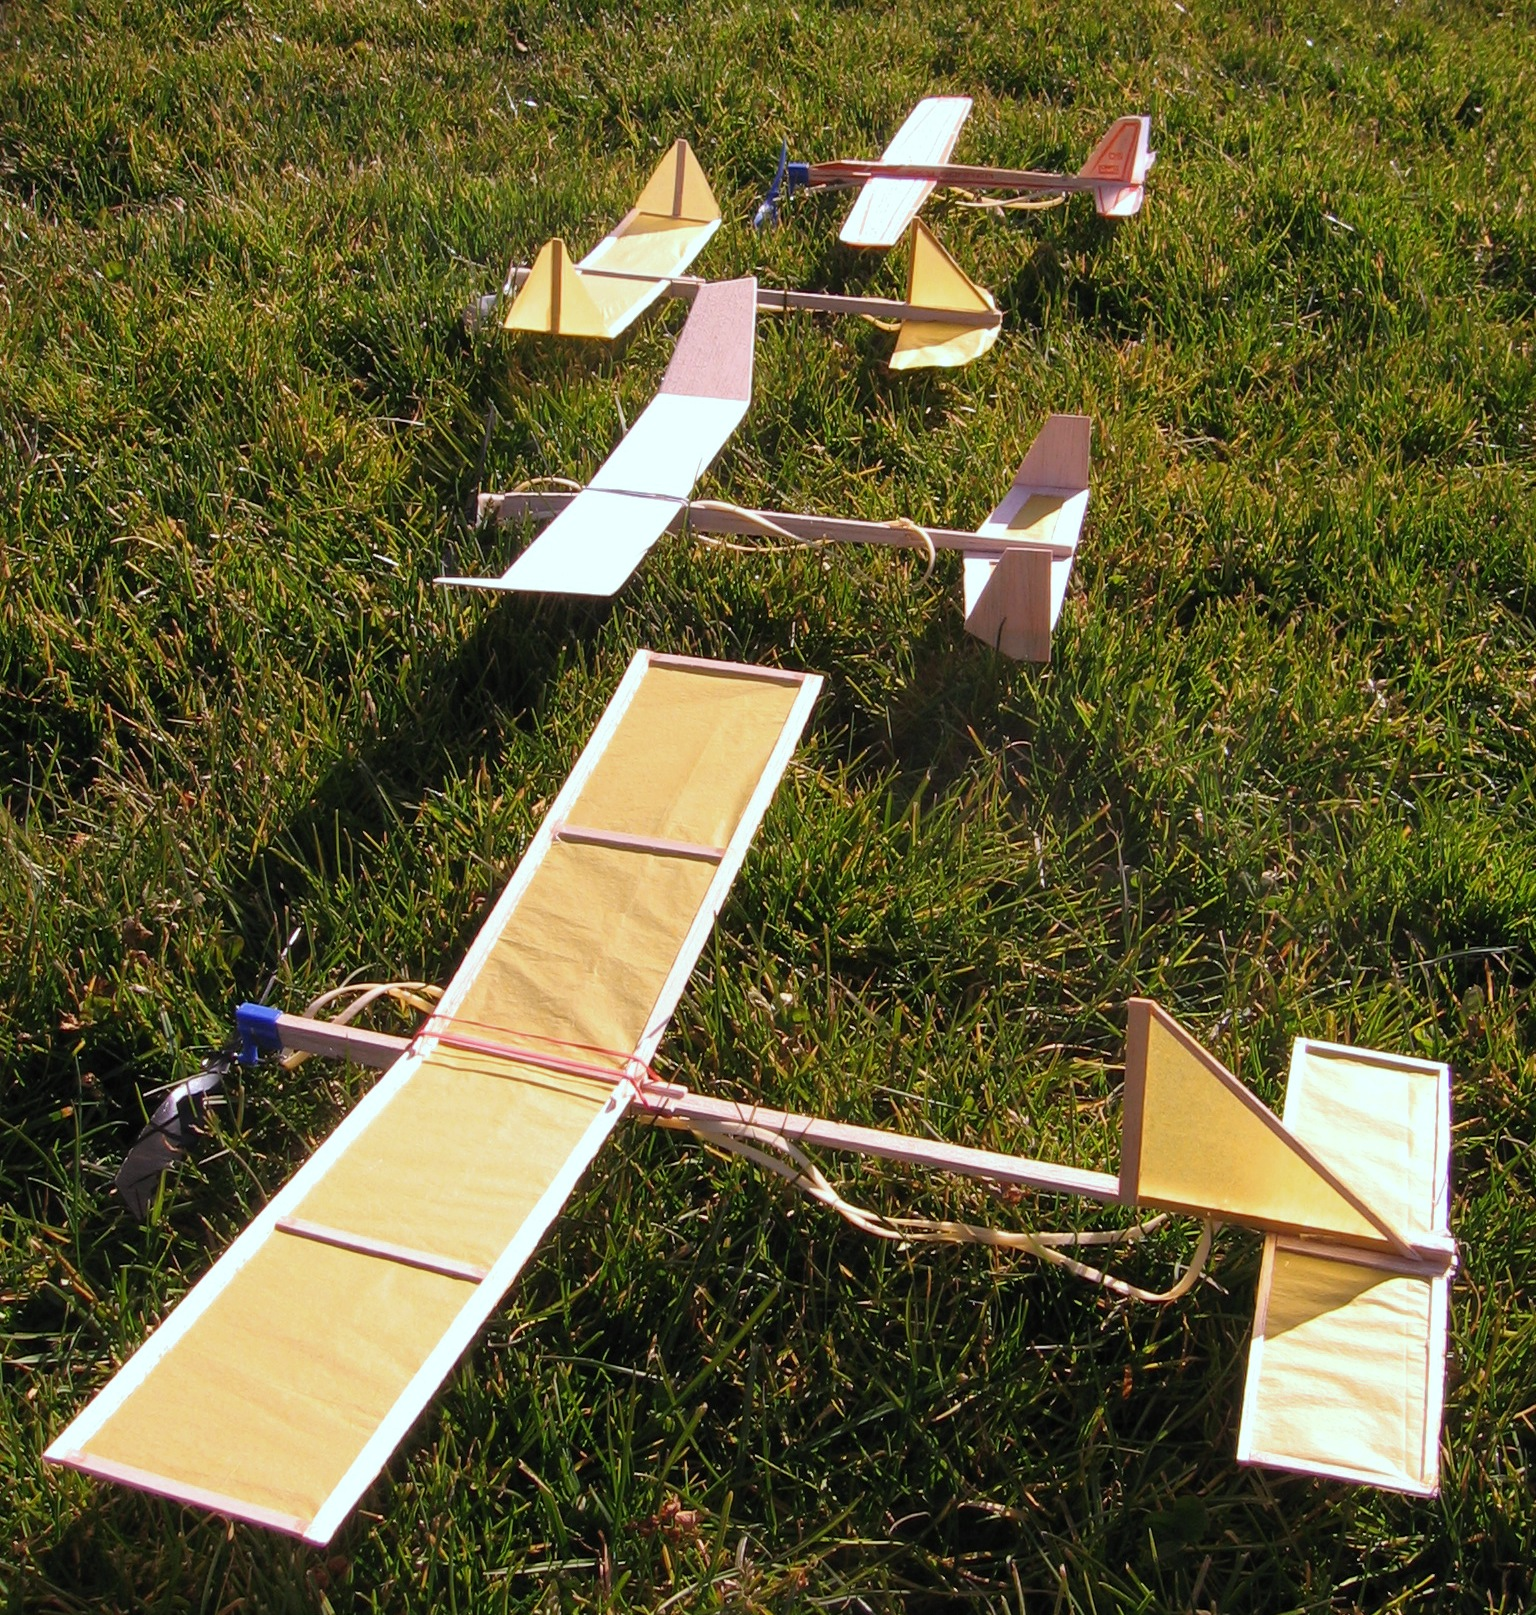 balsa wood airplane designs for distance flight